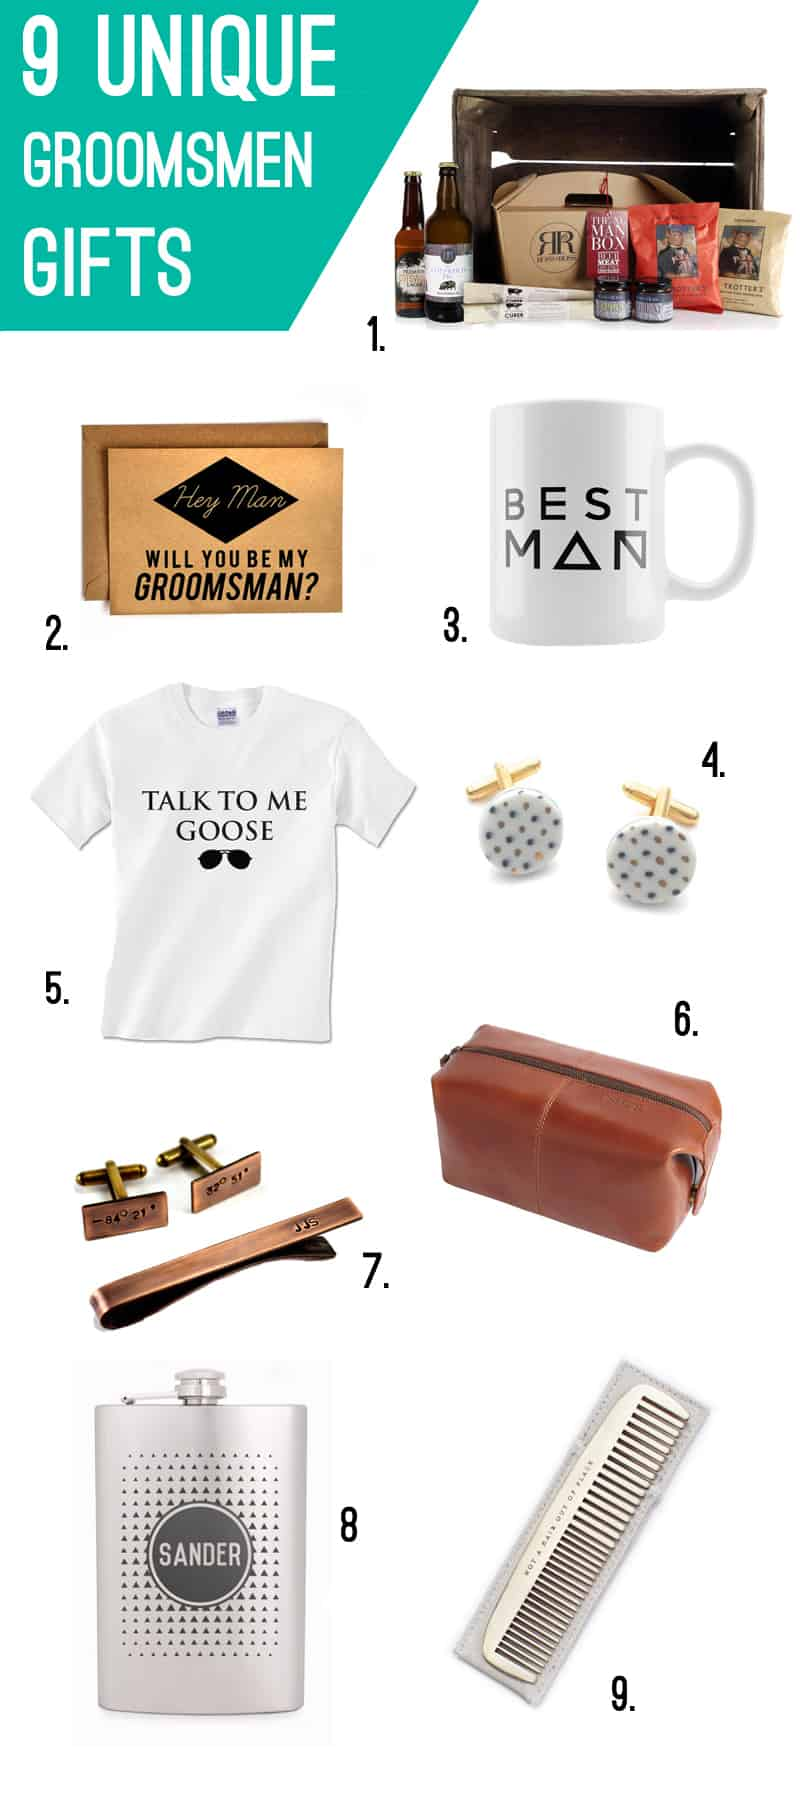 best groomsmen gifts 9 unique gifts for groomsmen bespoke wedding 30210